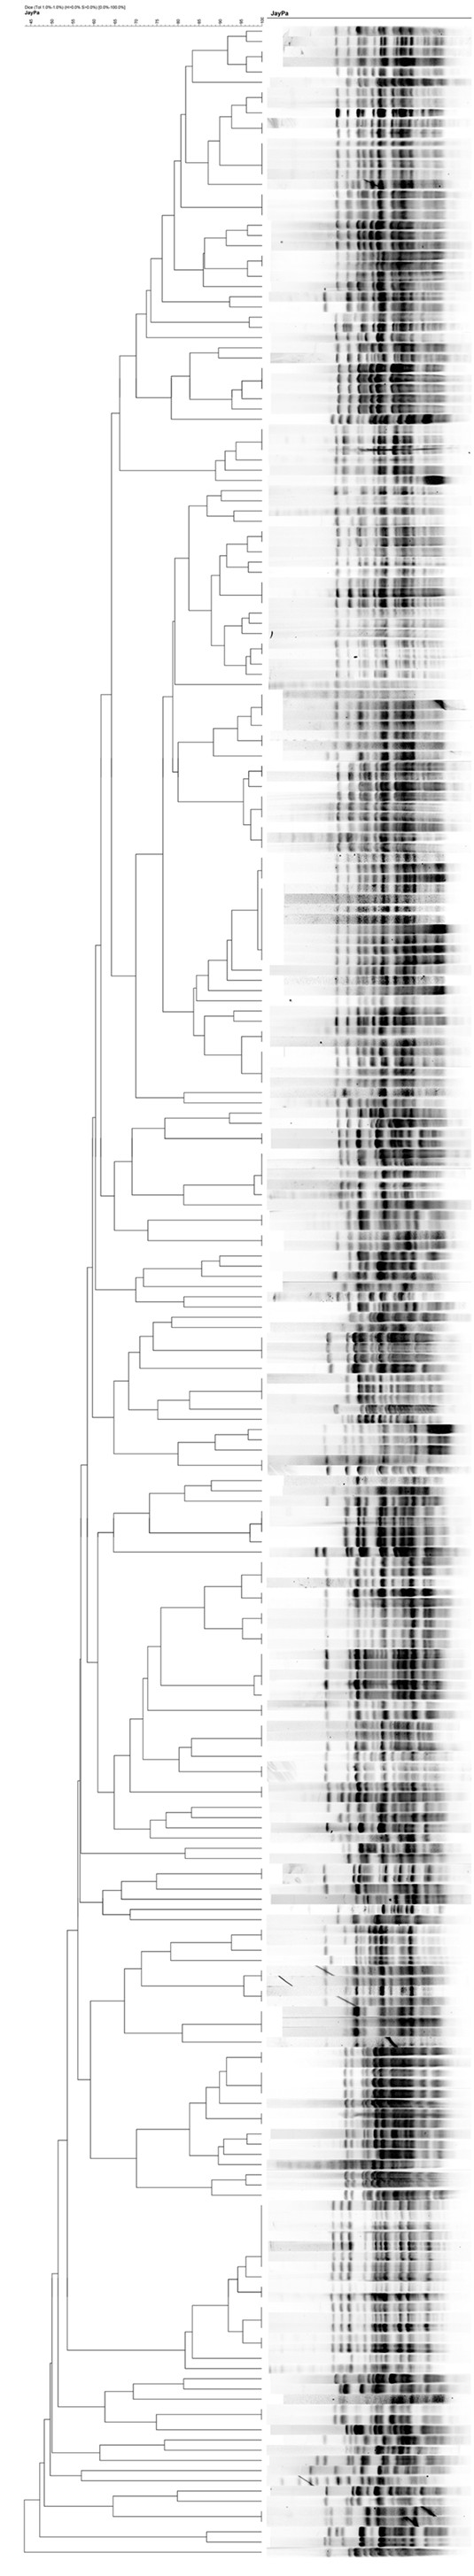 http://static-content.springer.com/image/art%3A10.1186%2F1476-0711-11-25/MediaObjects/12941_2012_Article_265_Fig1_HTML.jpg